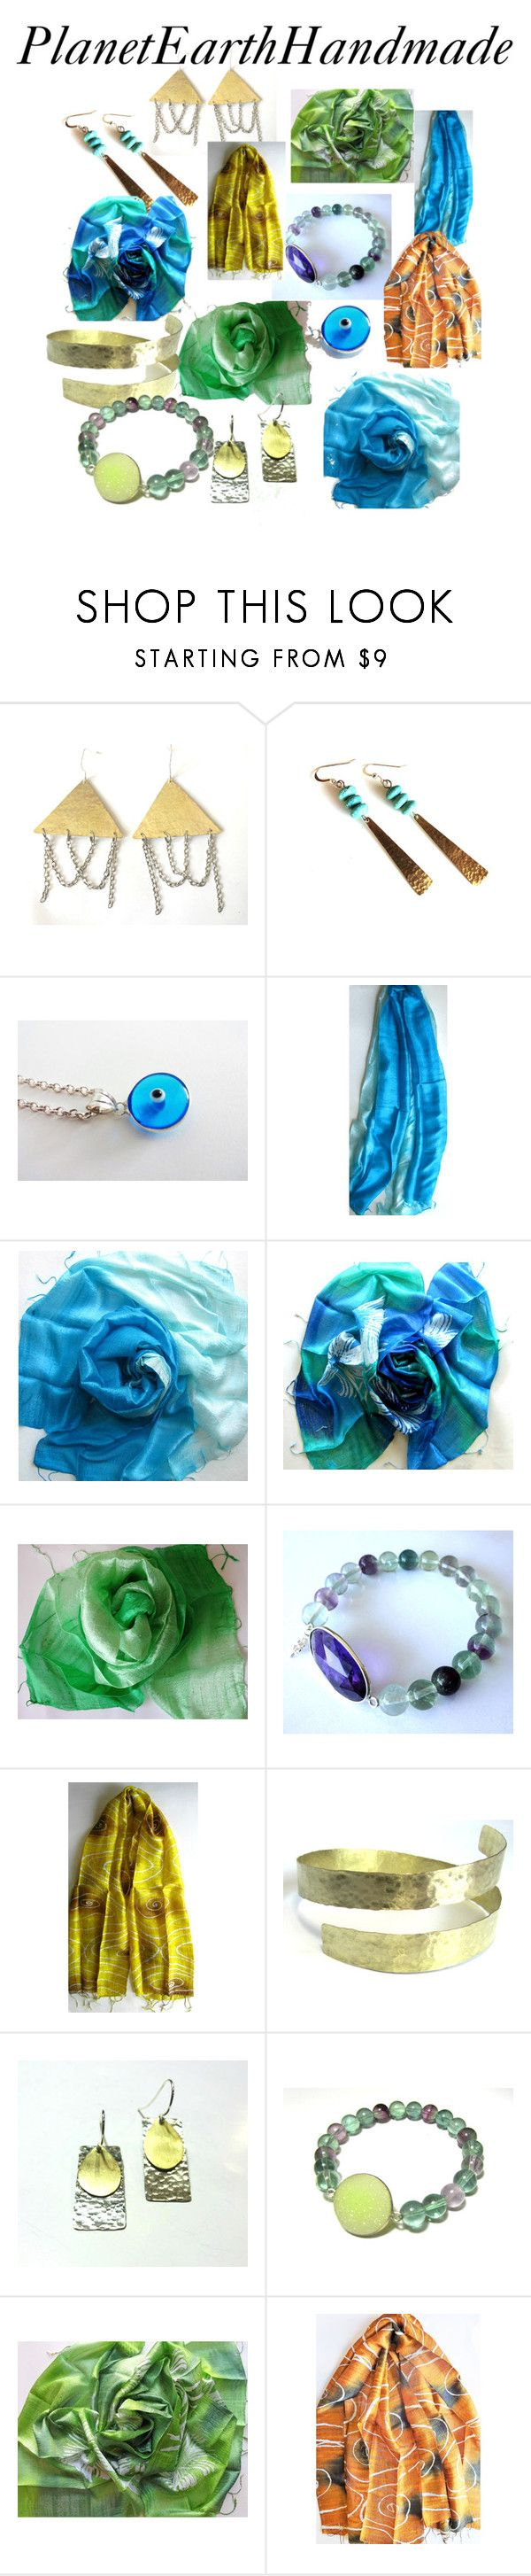 PlanetEarthHandmade by anna-recycle on Polyvore featuring MATÌ and silk